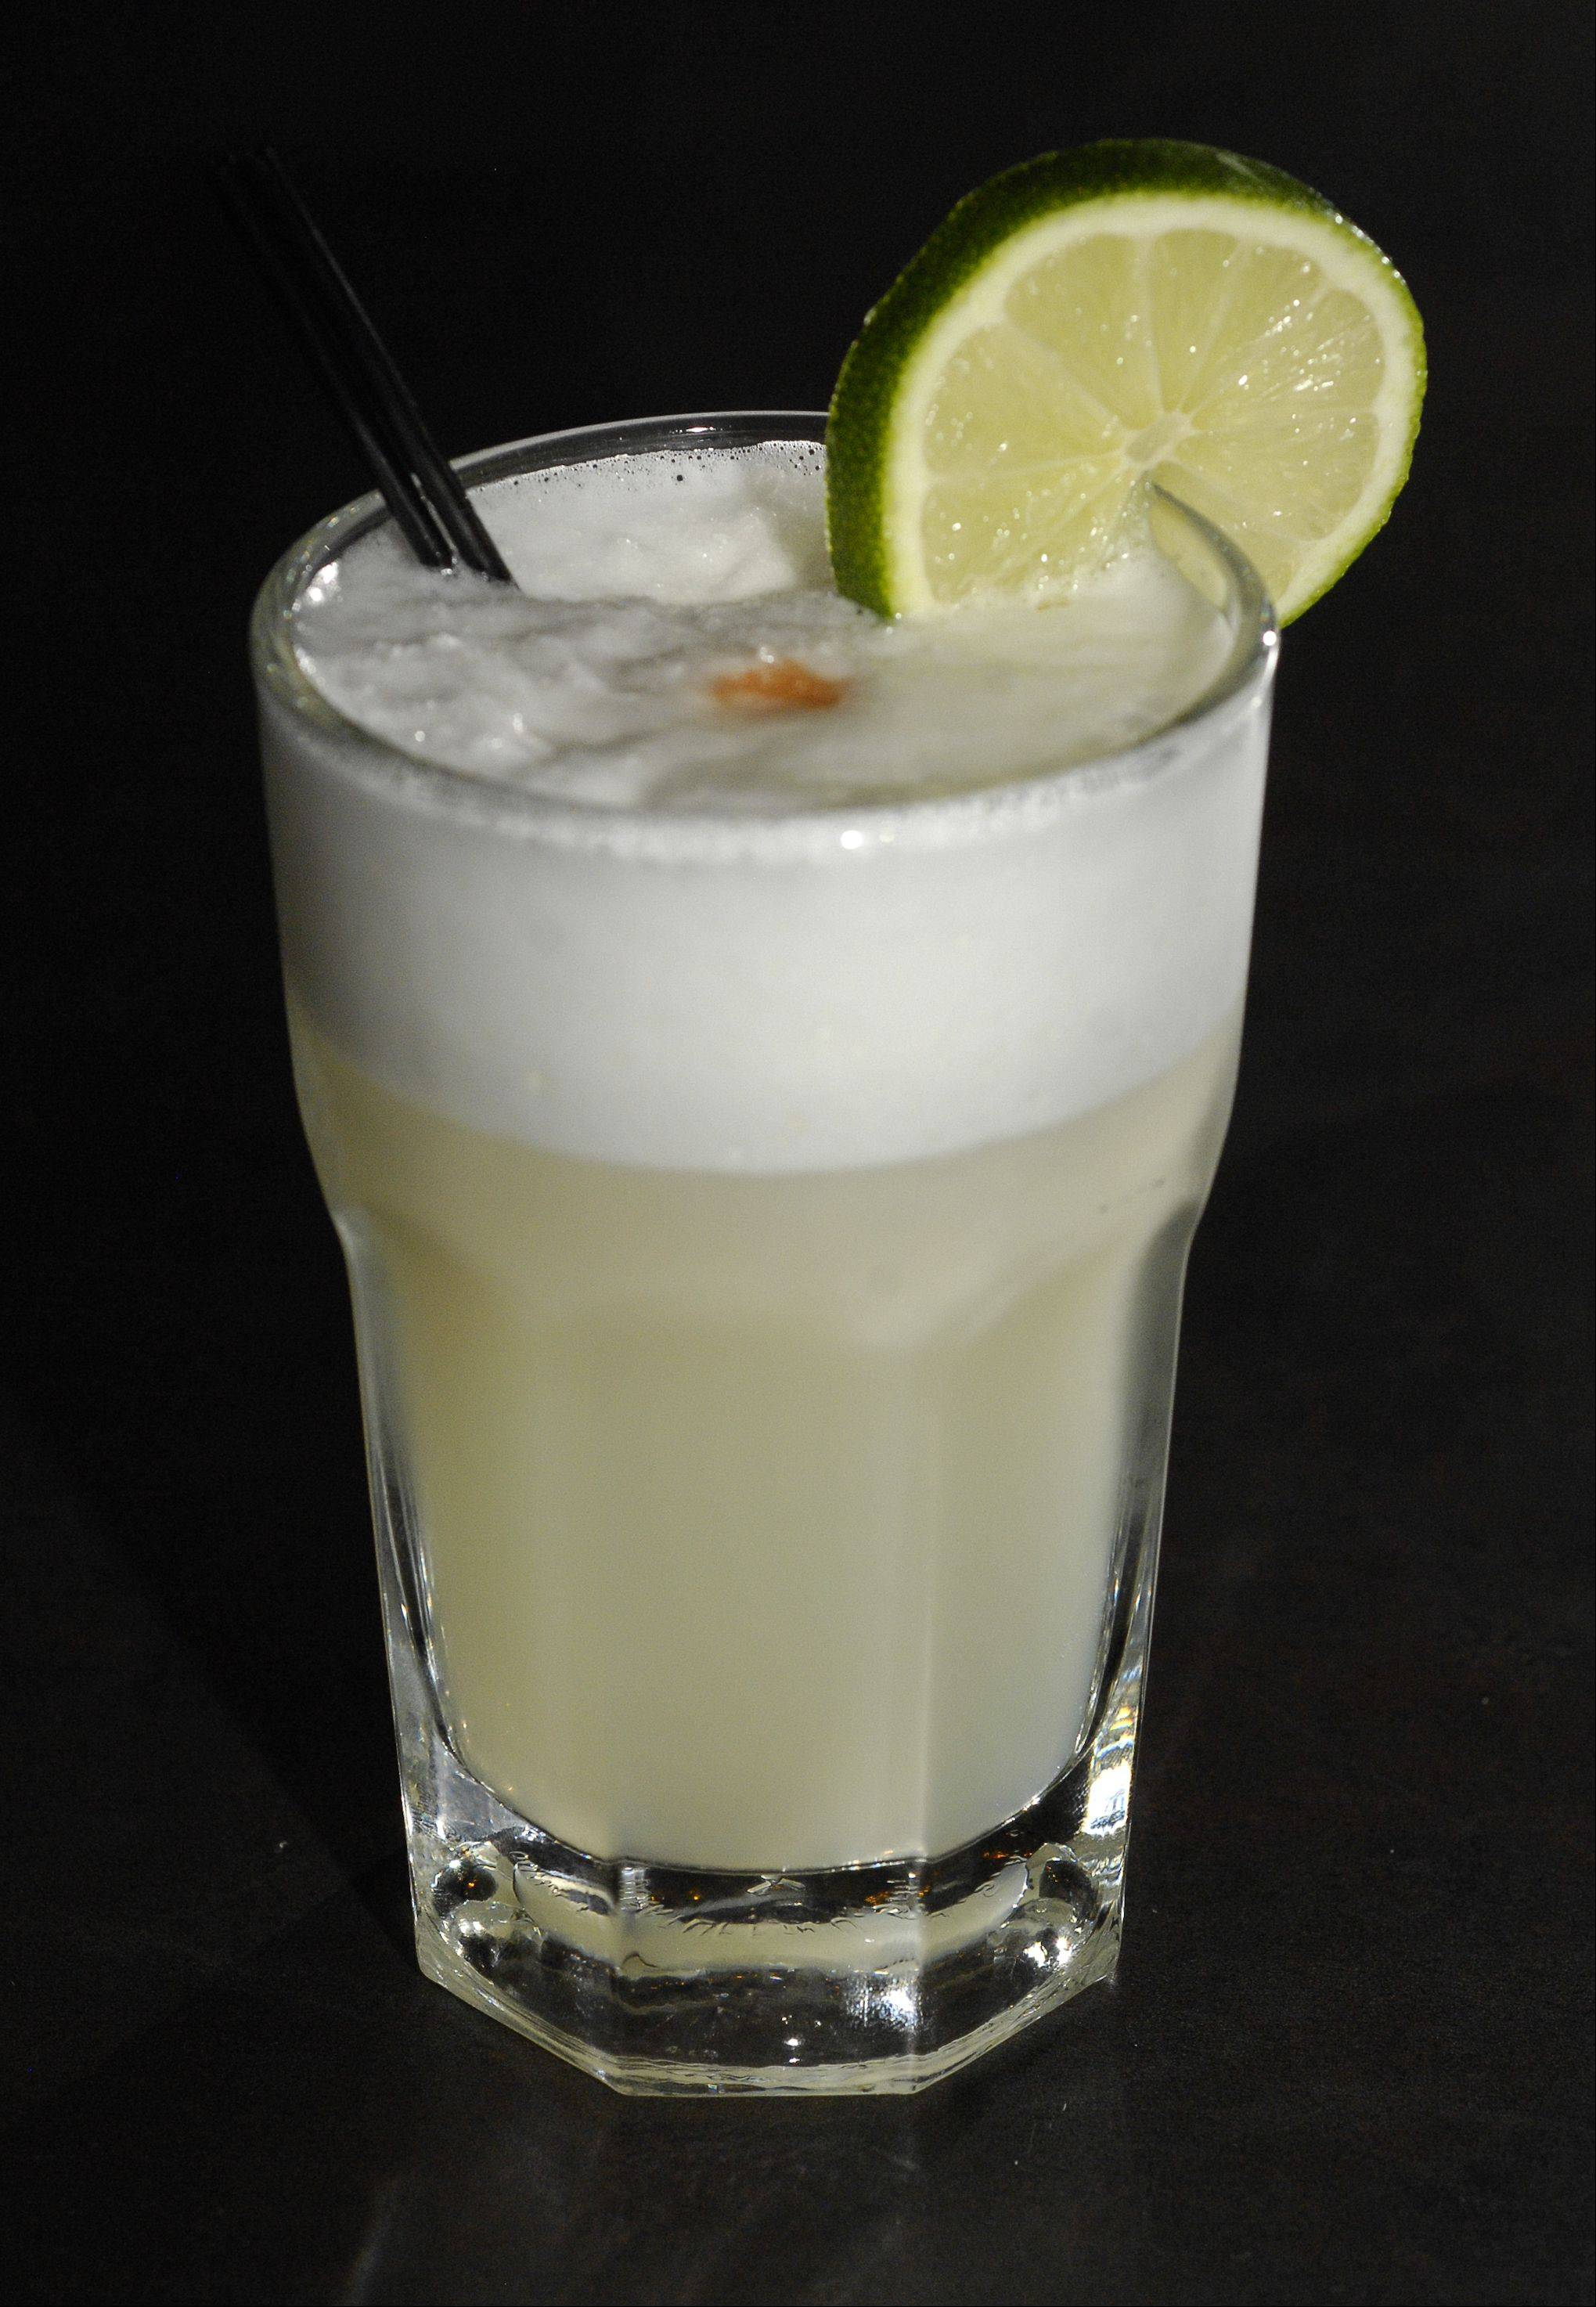 Rio's in Addison mixes up pisco sours, a traditional South American cocktail.